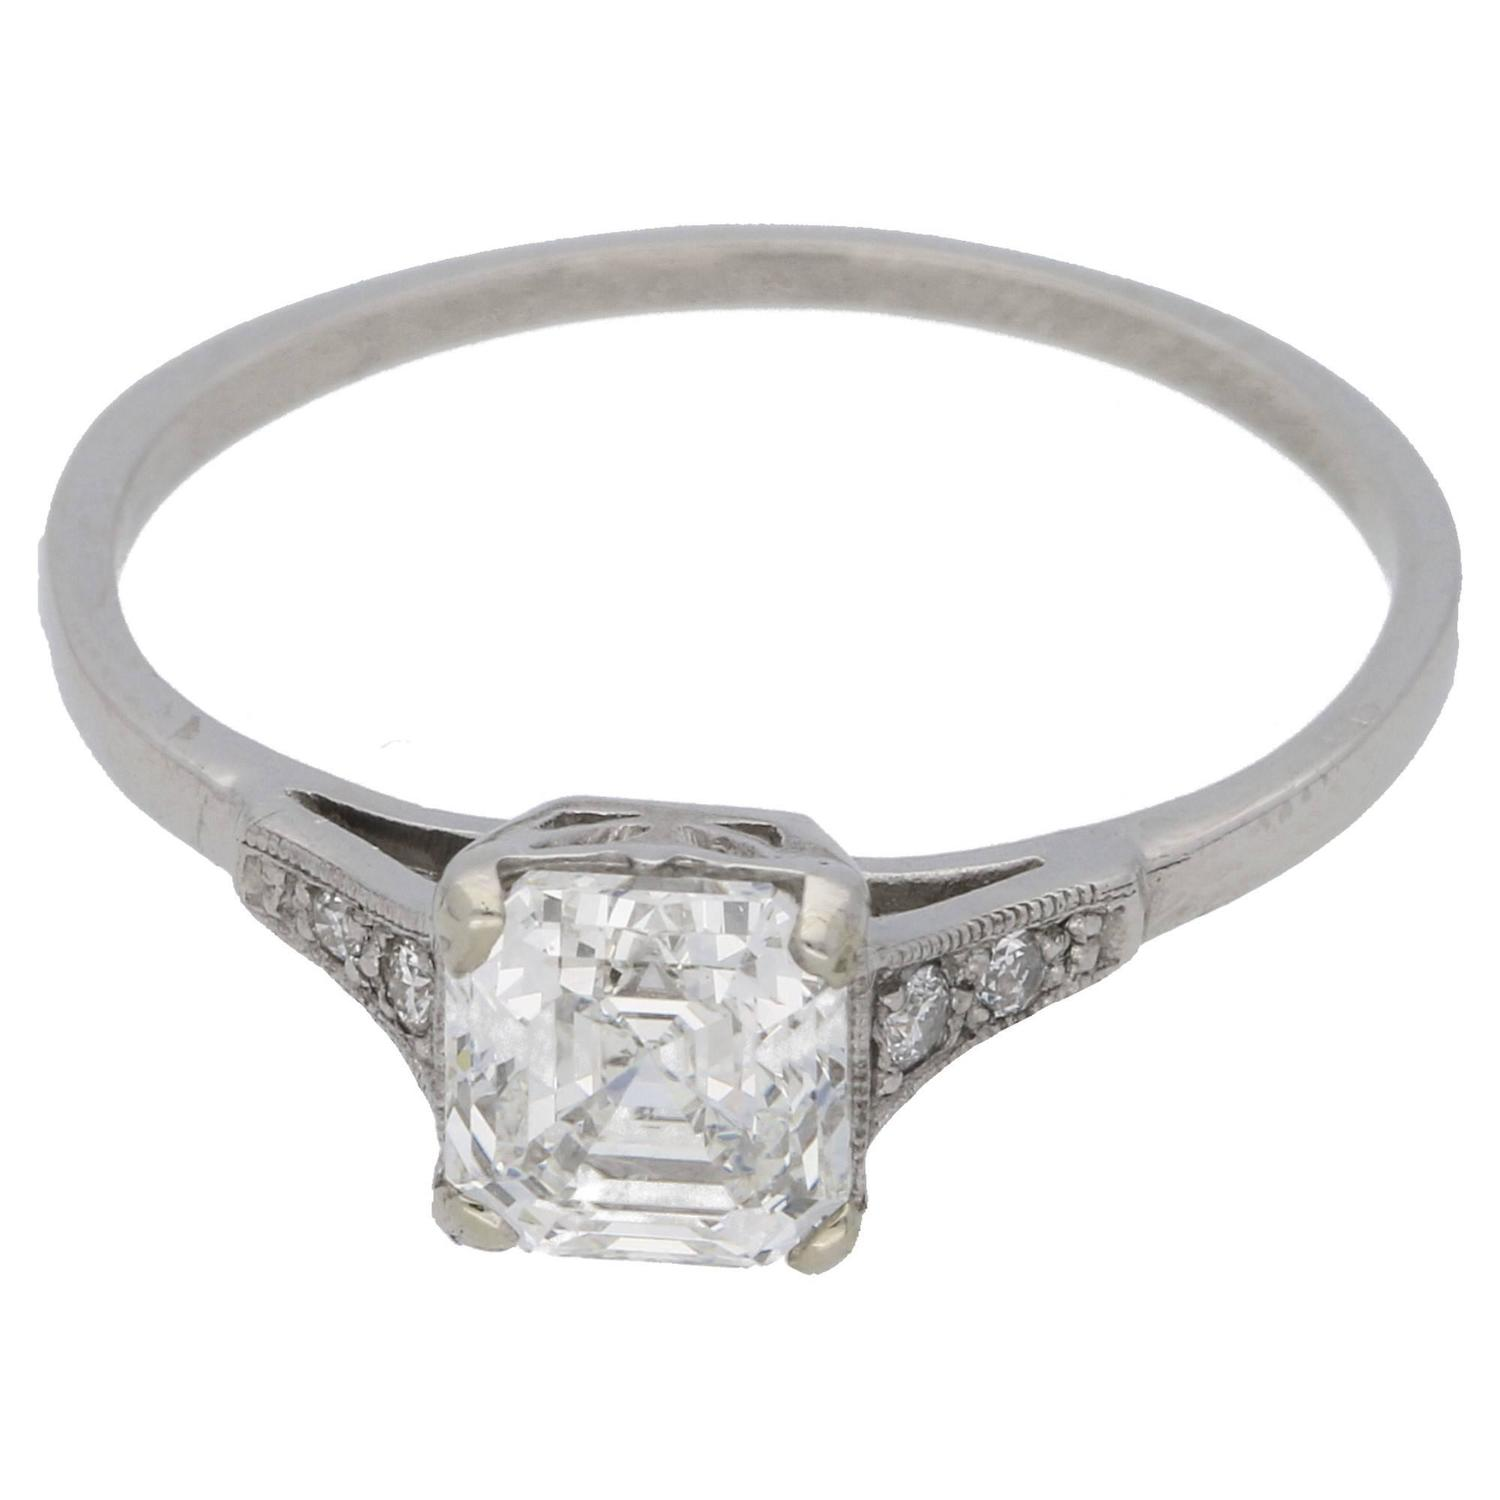 false subsampling scale asscher product victorian diamond ring crop cut company deco london upscale engagement shop art